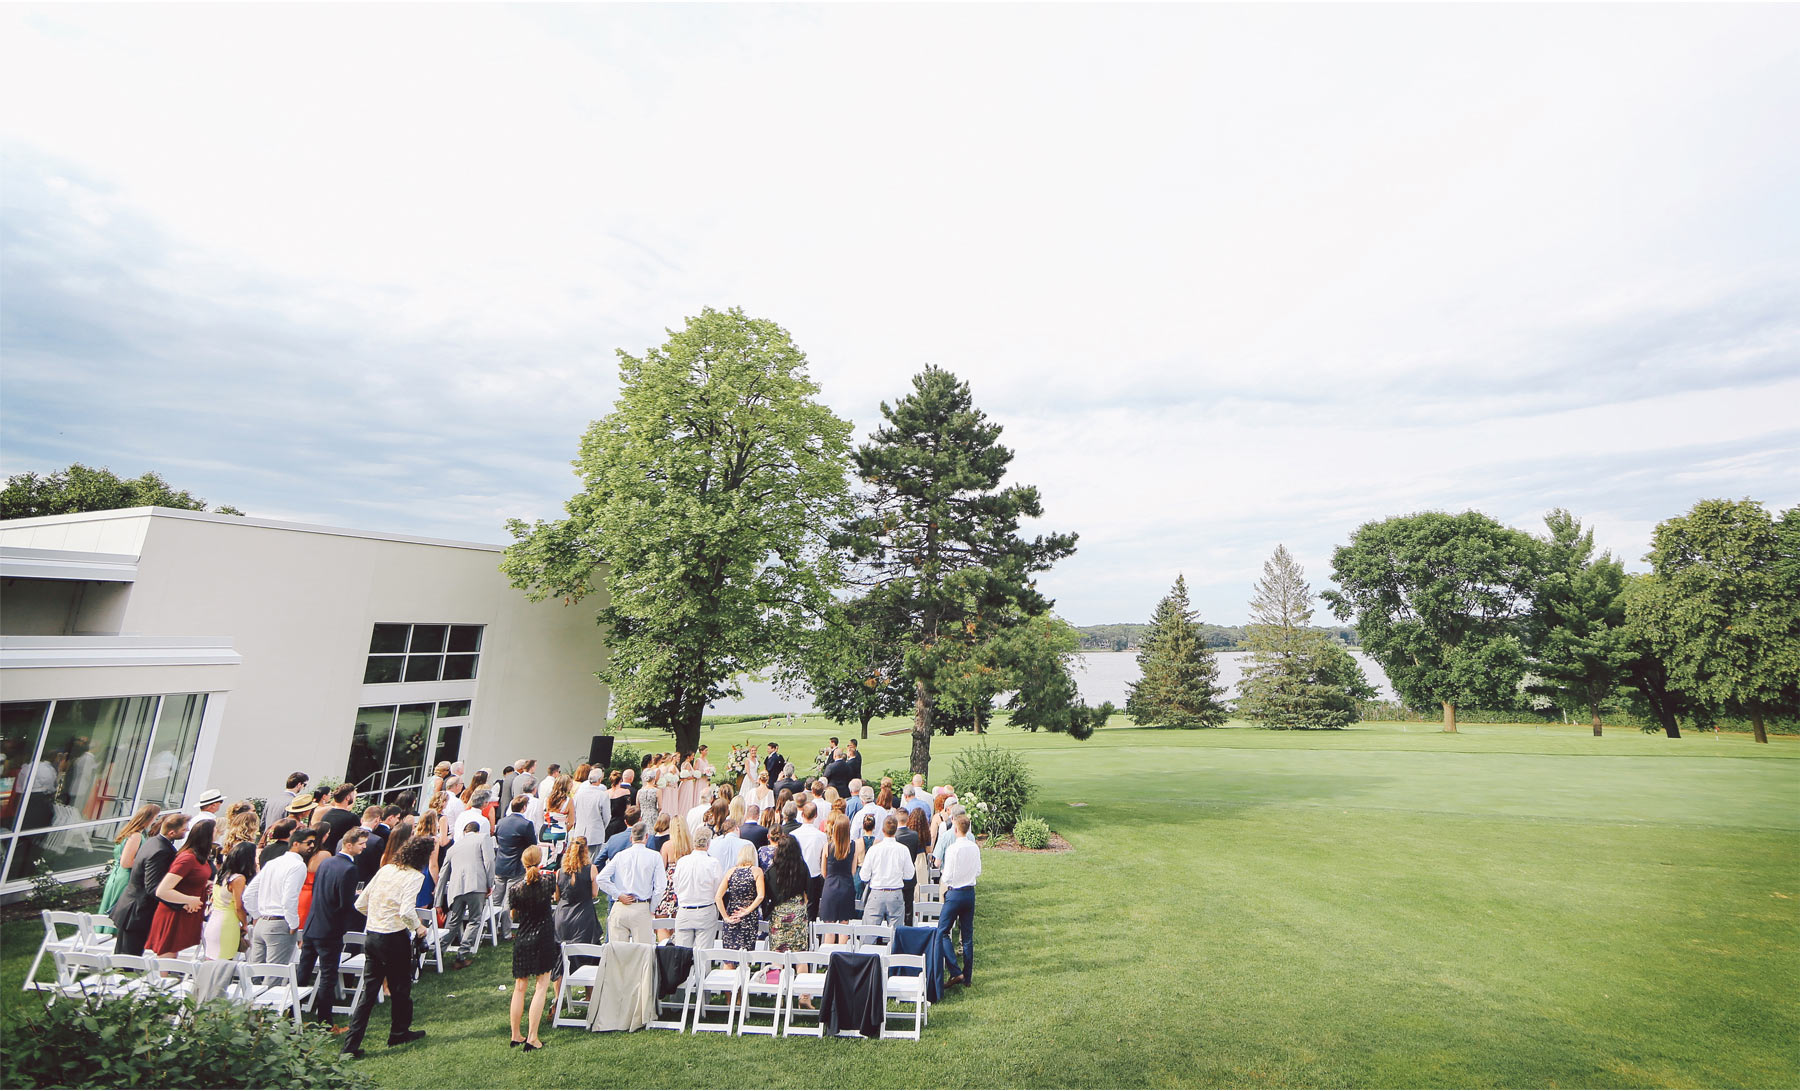 10-Minneapolis-Minnesota-Wedding-Photography-by-Vick-Photography-Lafayette-Club-Outdoor-Ceremony-Maggie-and-Nicholas.jpg